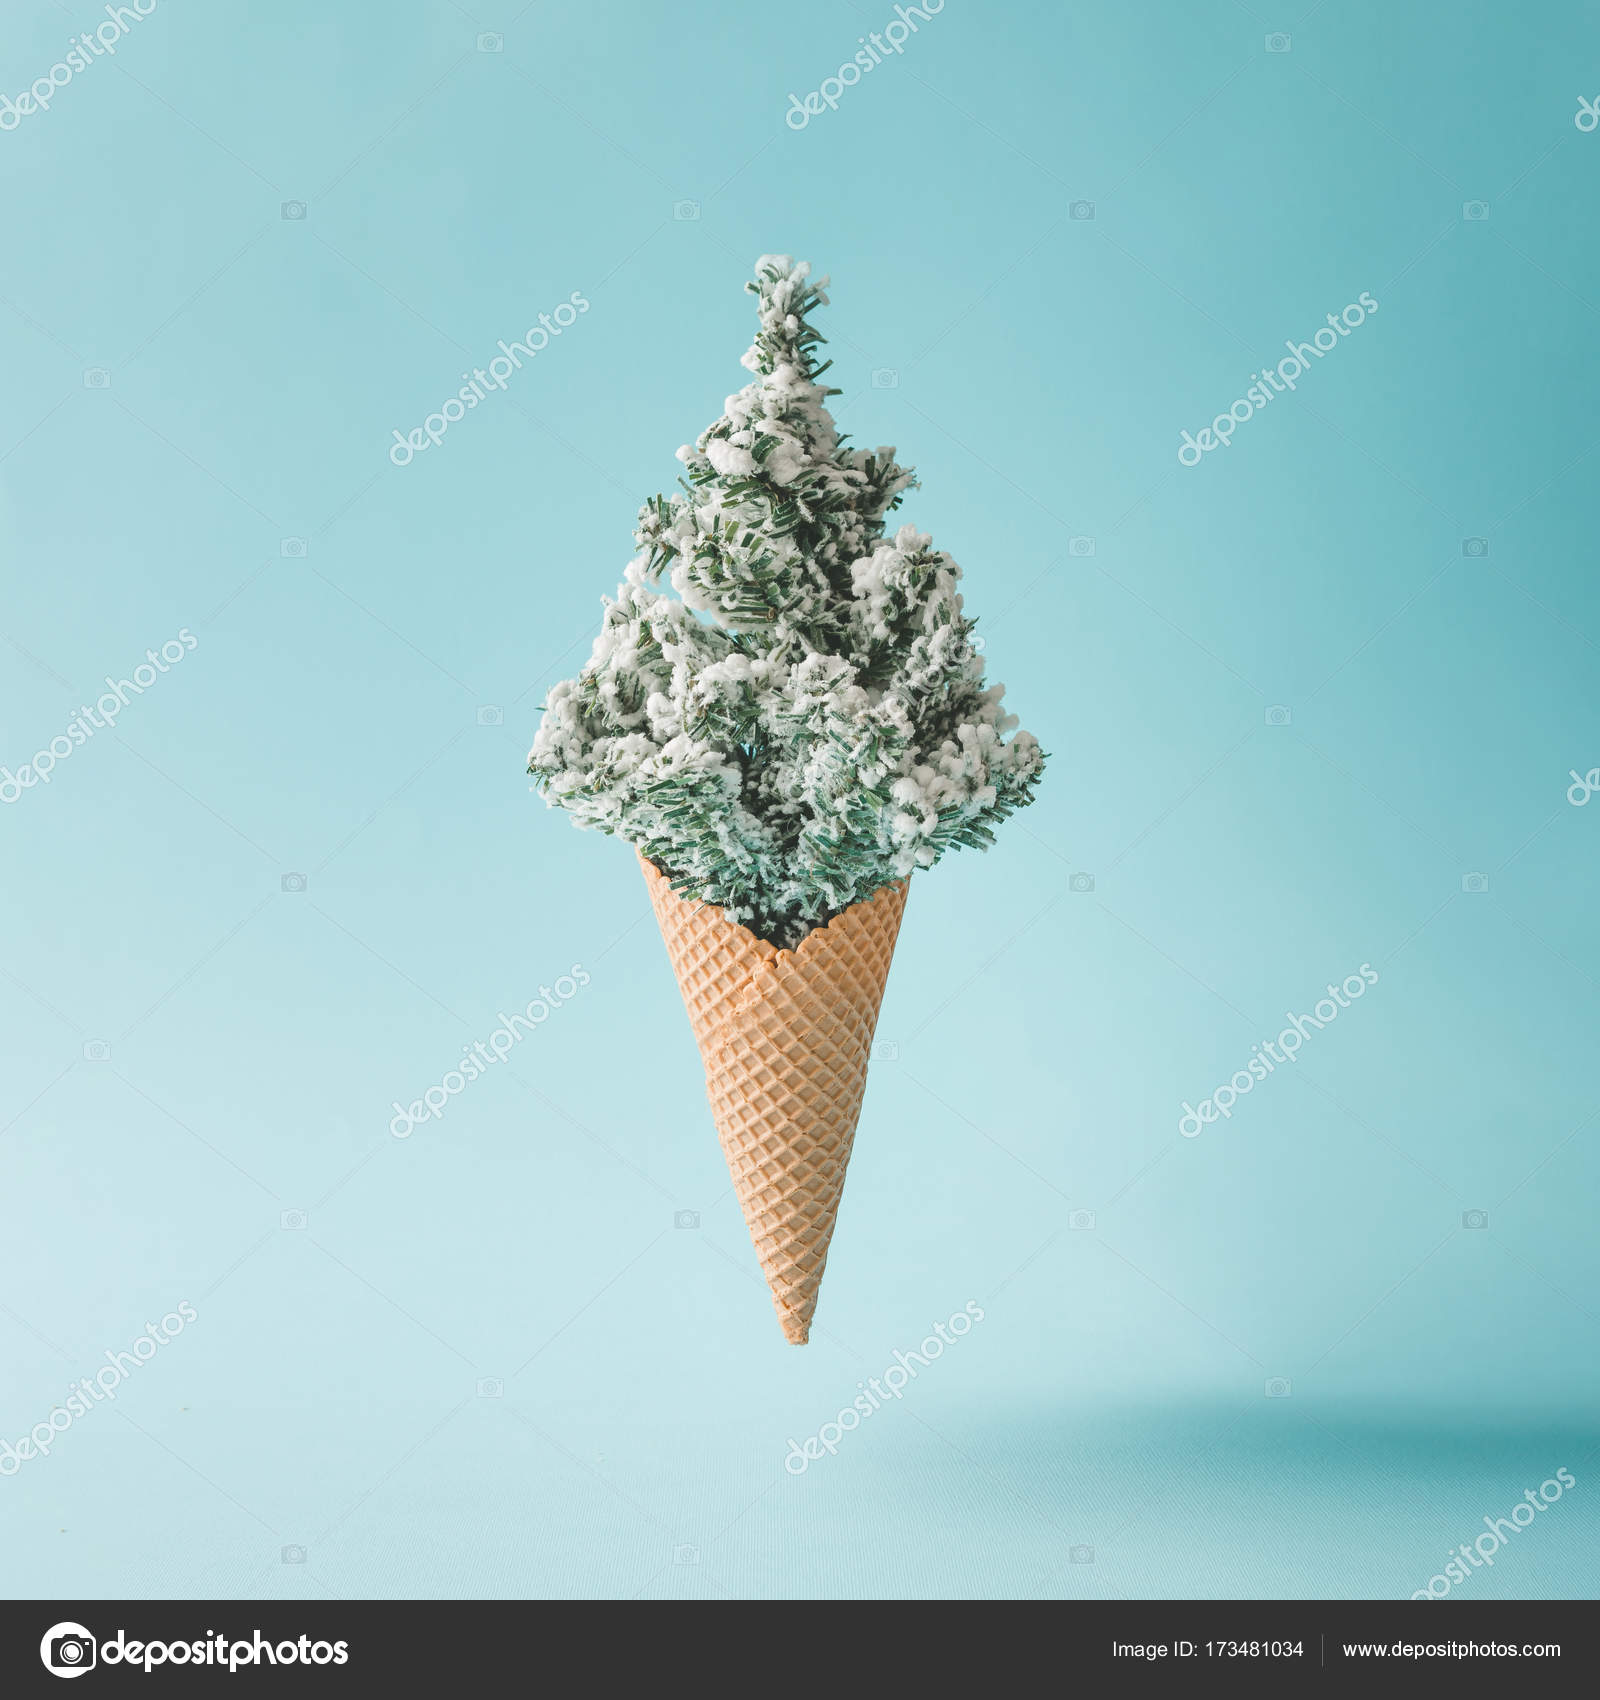 Christmas Tree In Ice Cream Cone Stock Photo Image By C Zamurovic 173481034